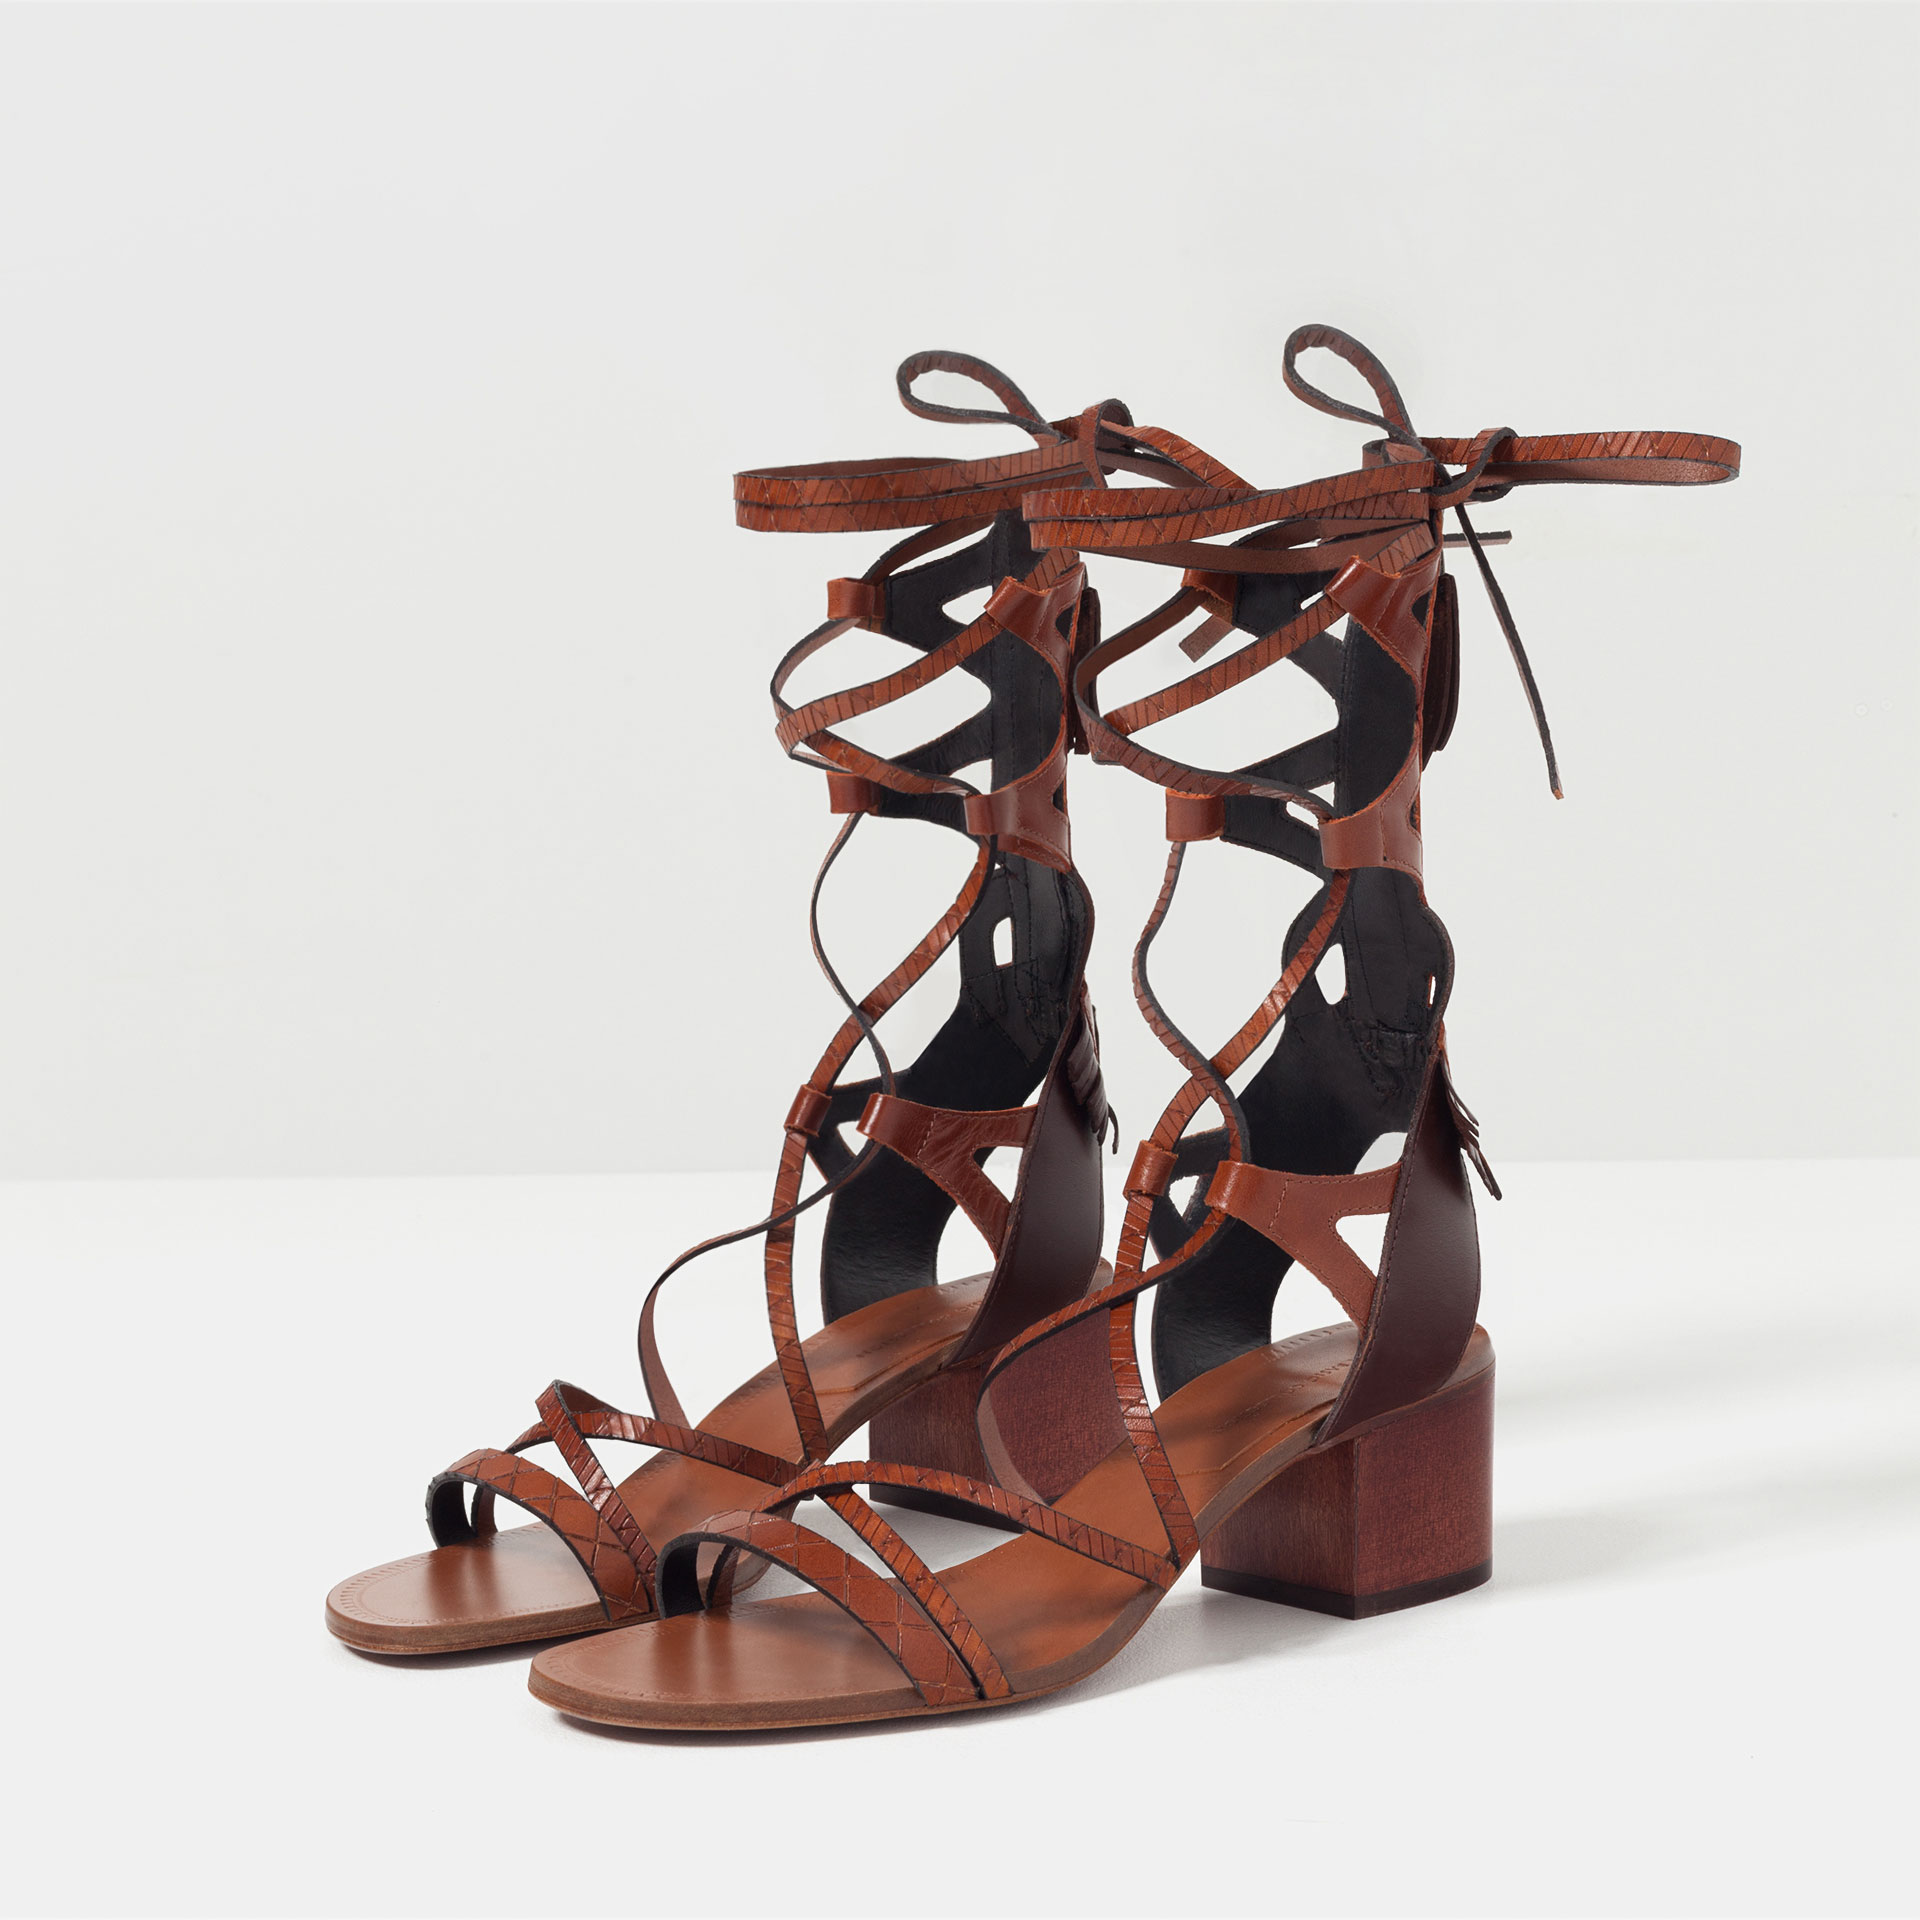 ZARA LACE UP LEATHER SANDALS VIEW 1